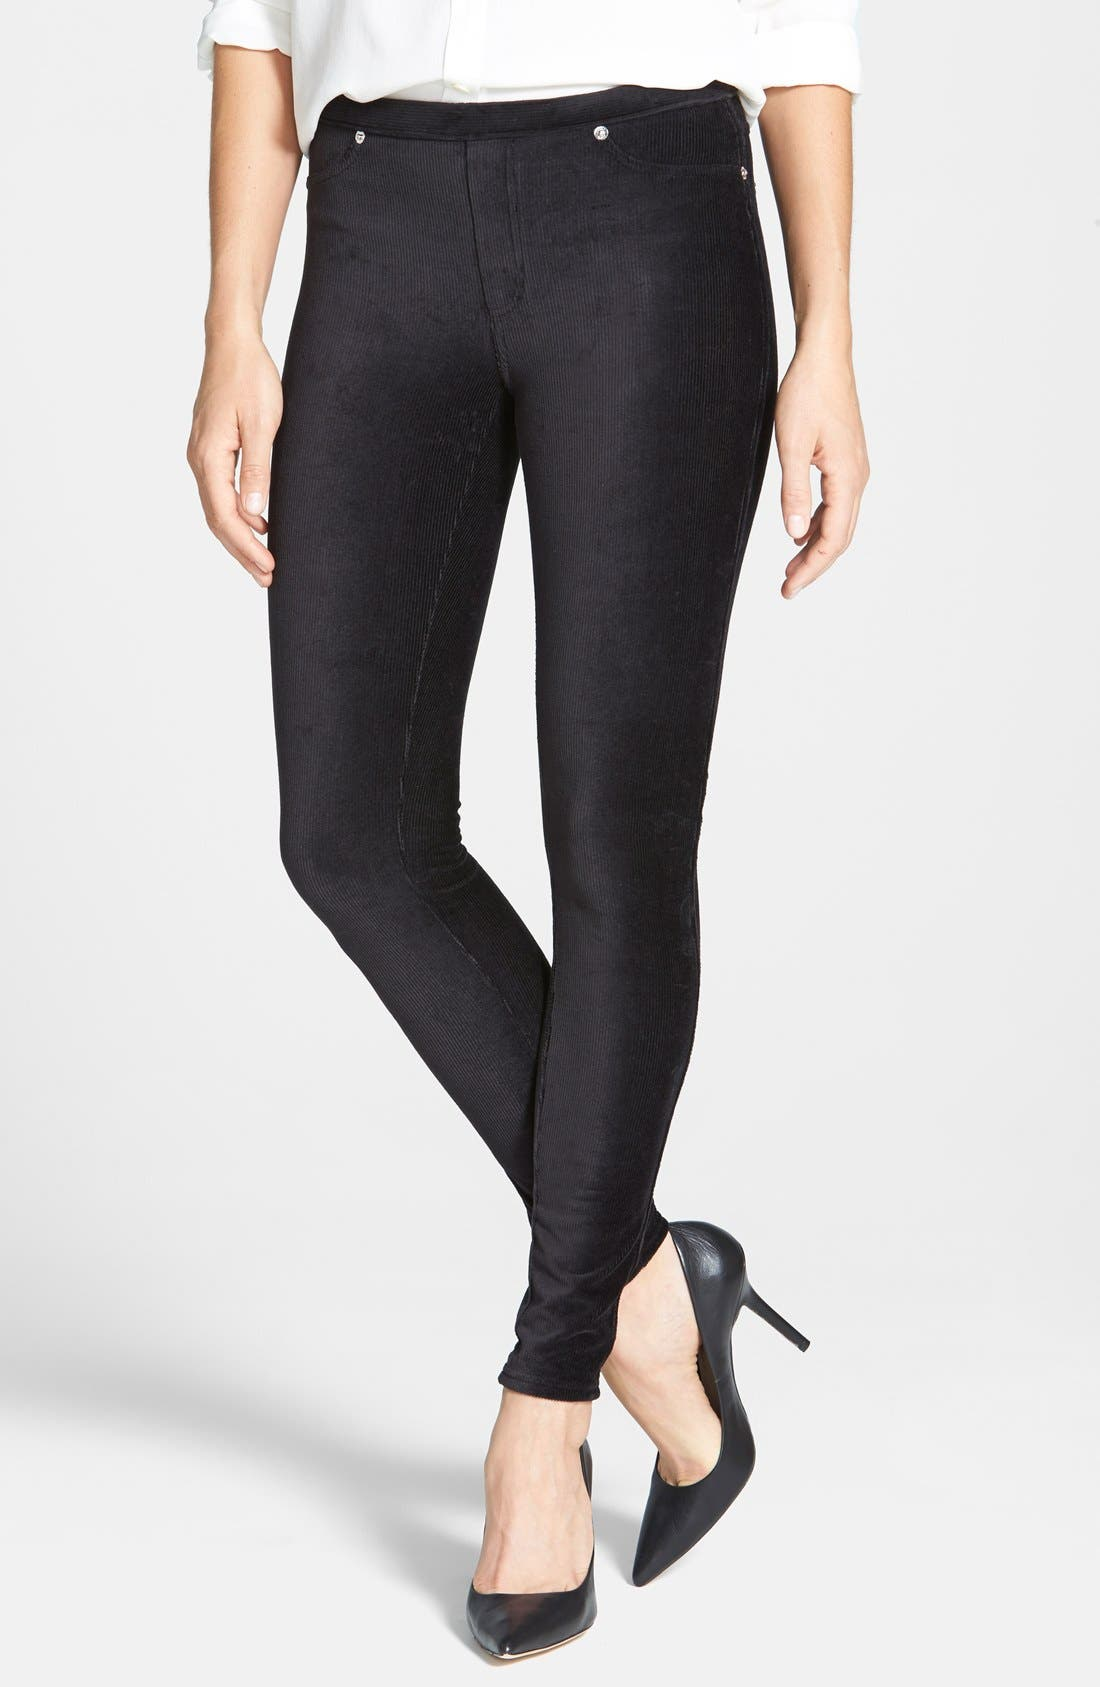 Main Image - MICHAEL Michael Kors Stretch Corduroy Leggings (Regular & Petite)